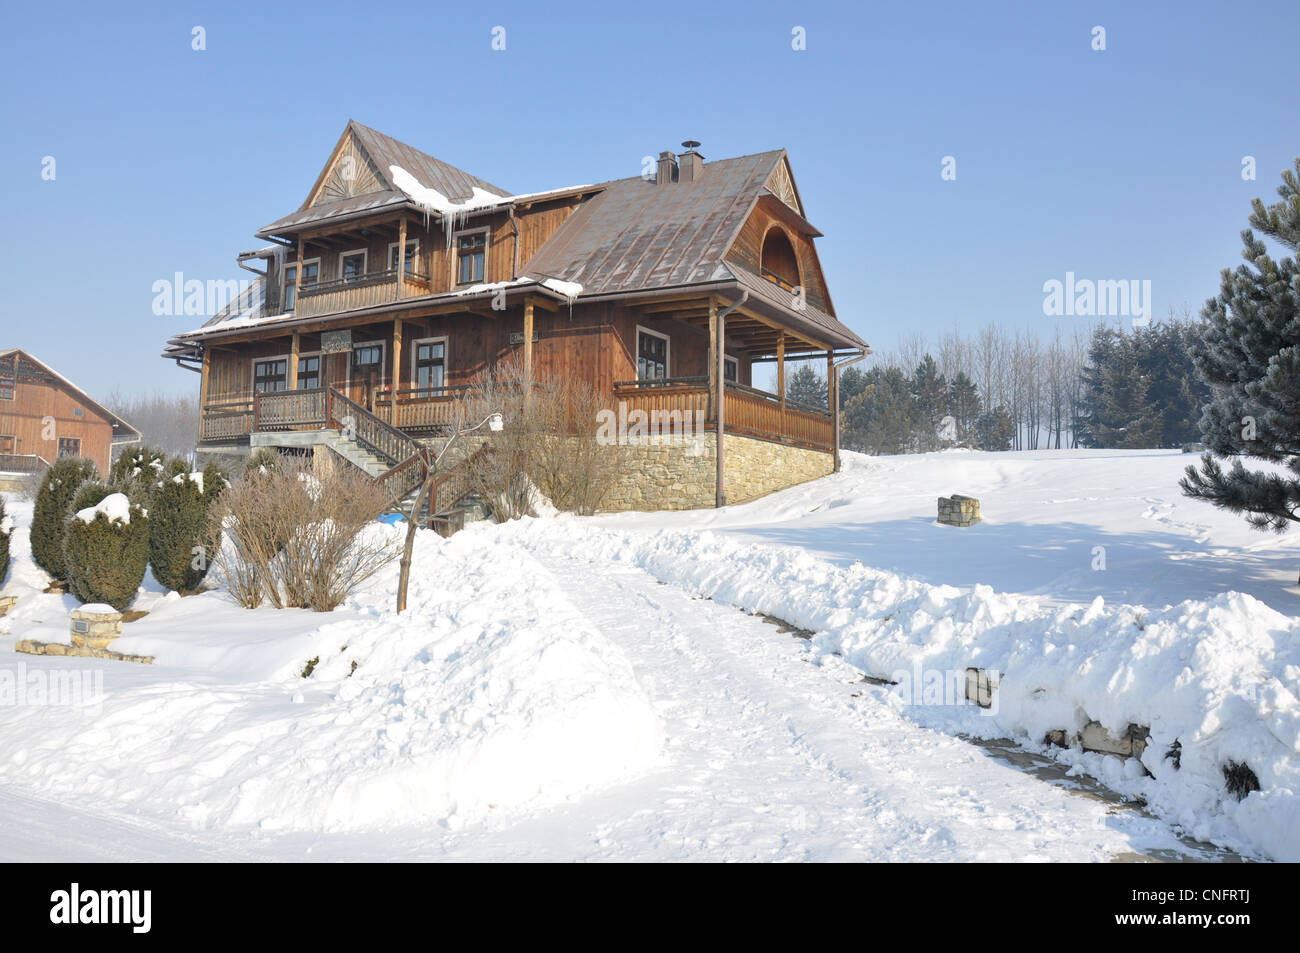 Pieniny Mountains, Karpaty, Poland in winter - house - Stock Image